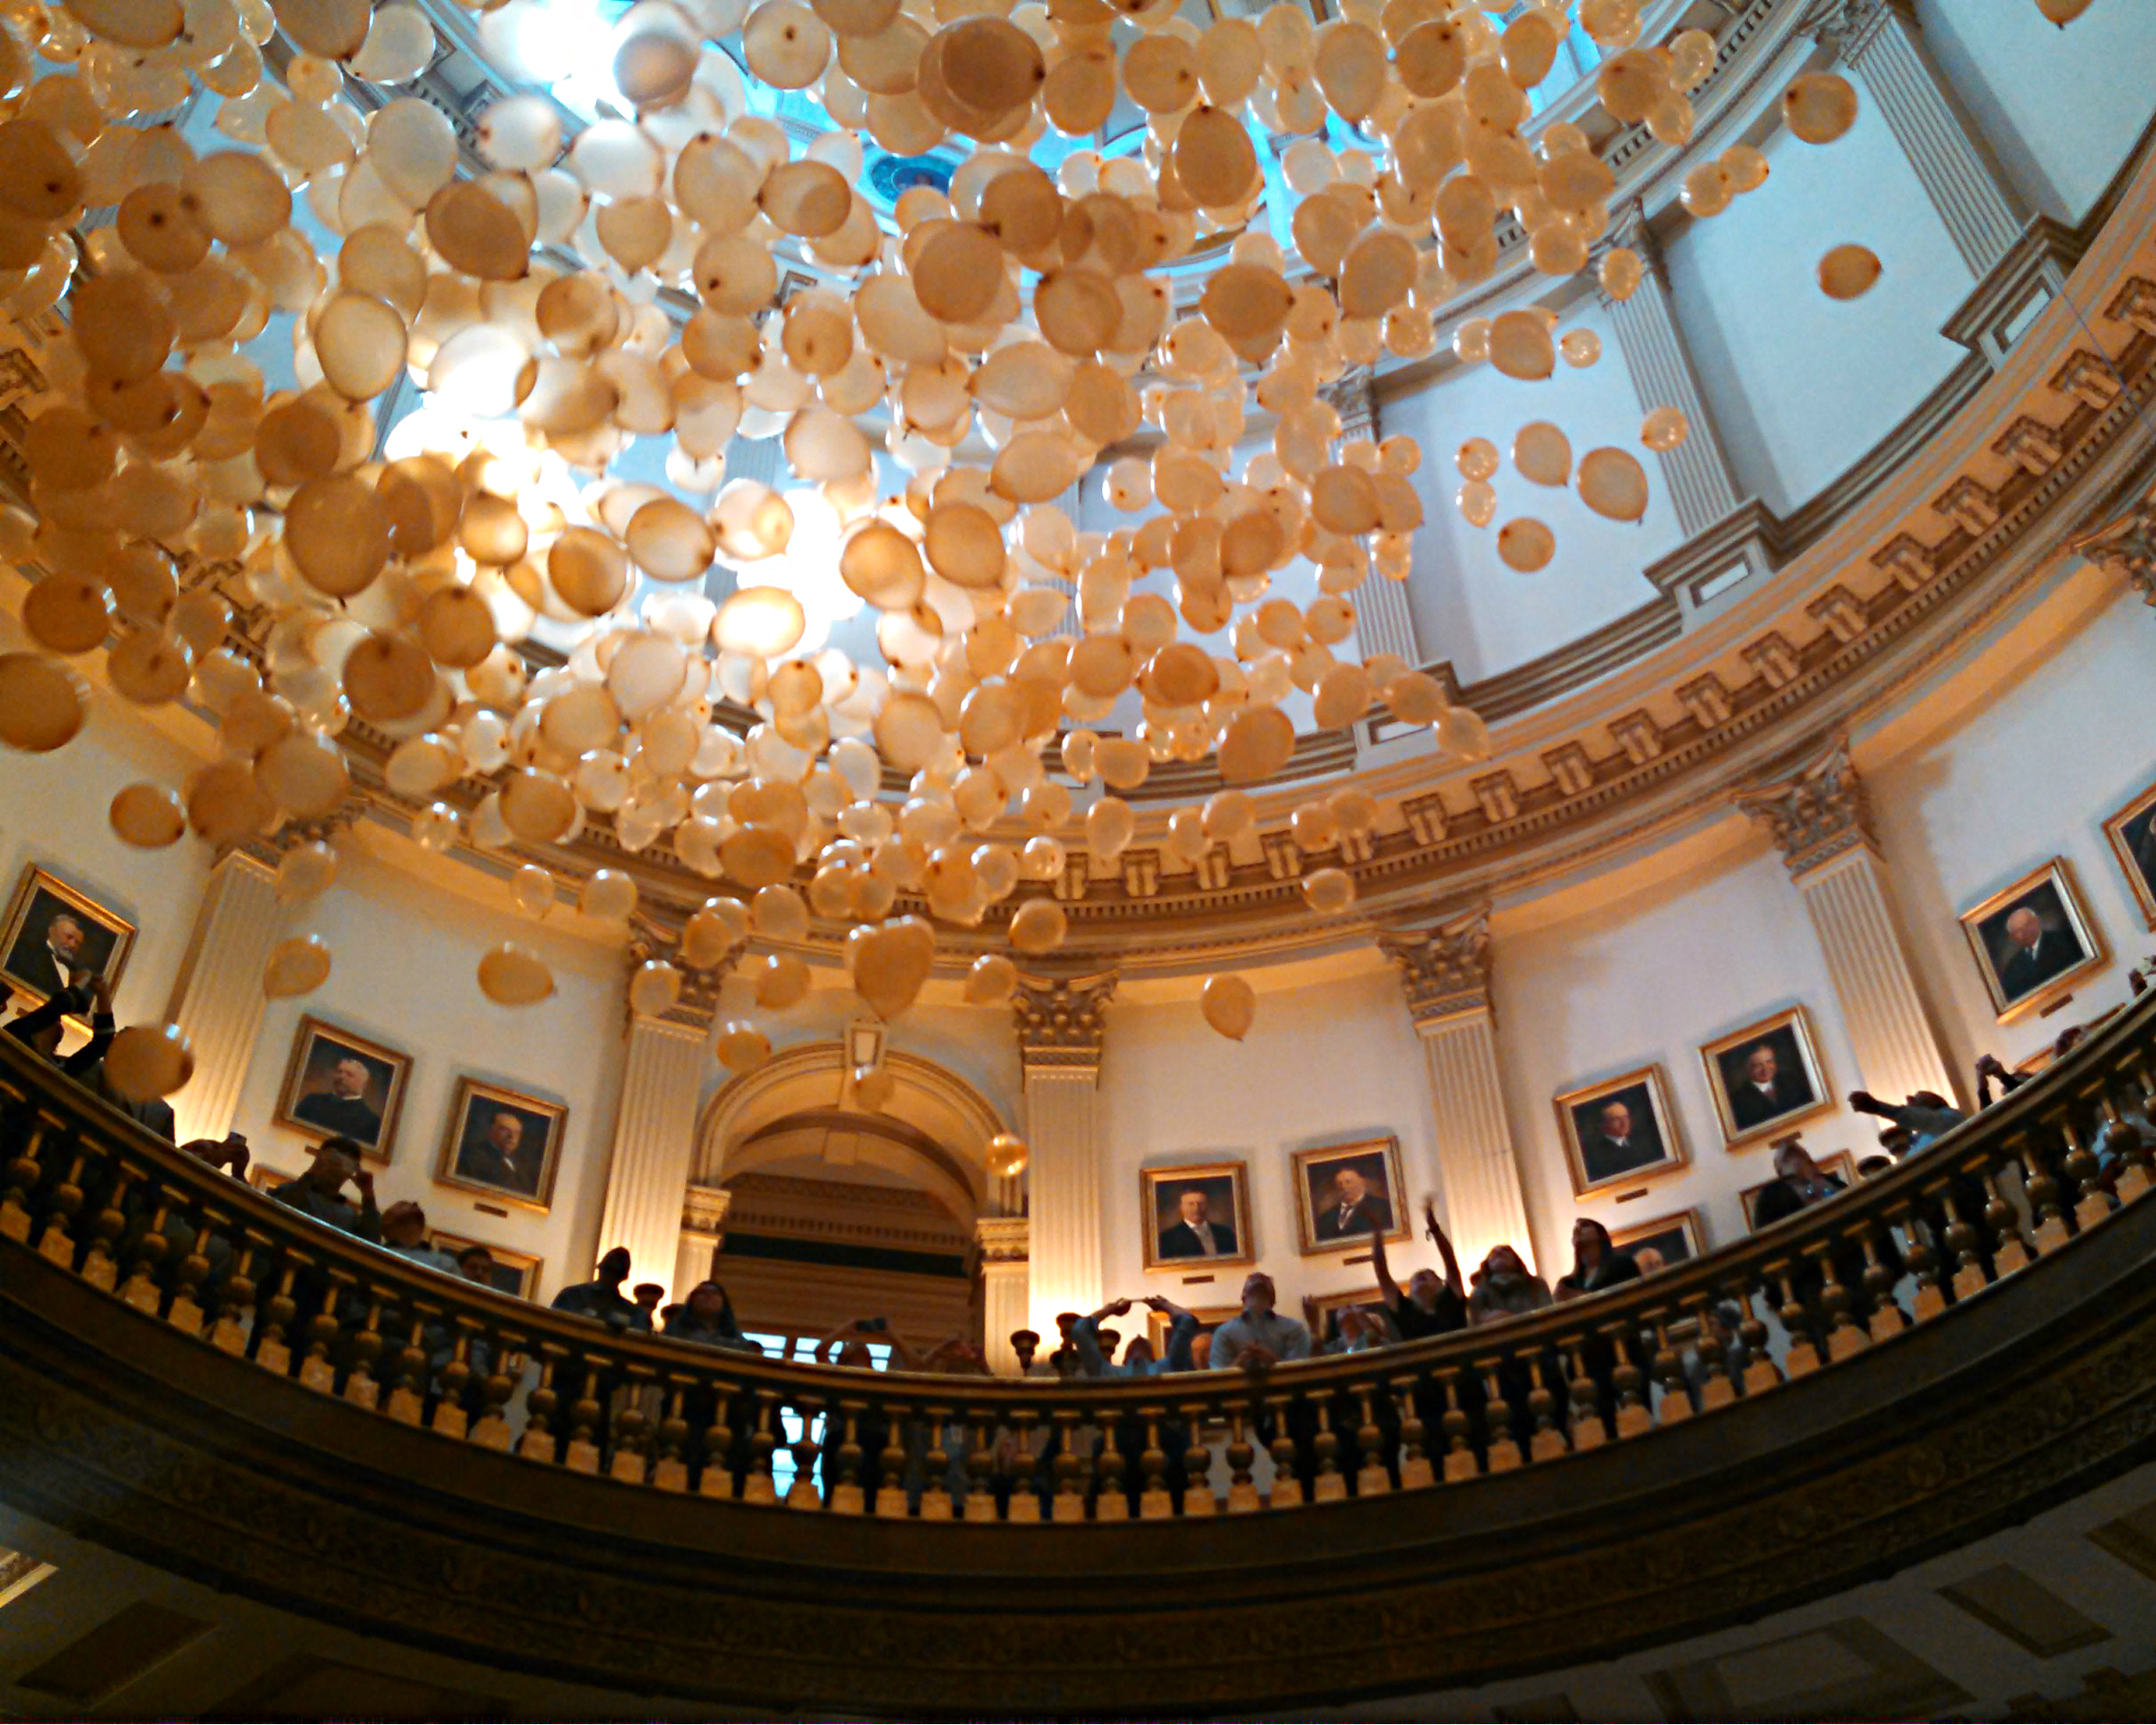 <p>A balloon drop was part of the ceremony to reopen the Capitol dome after eight years of renovations.</p>